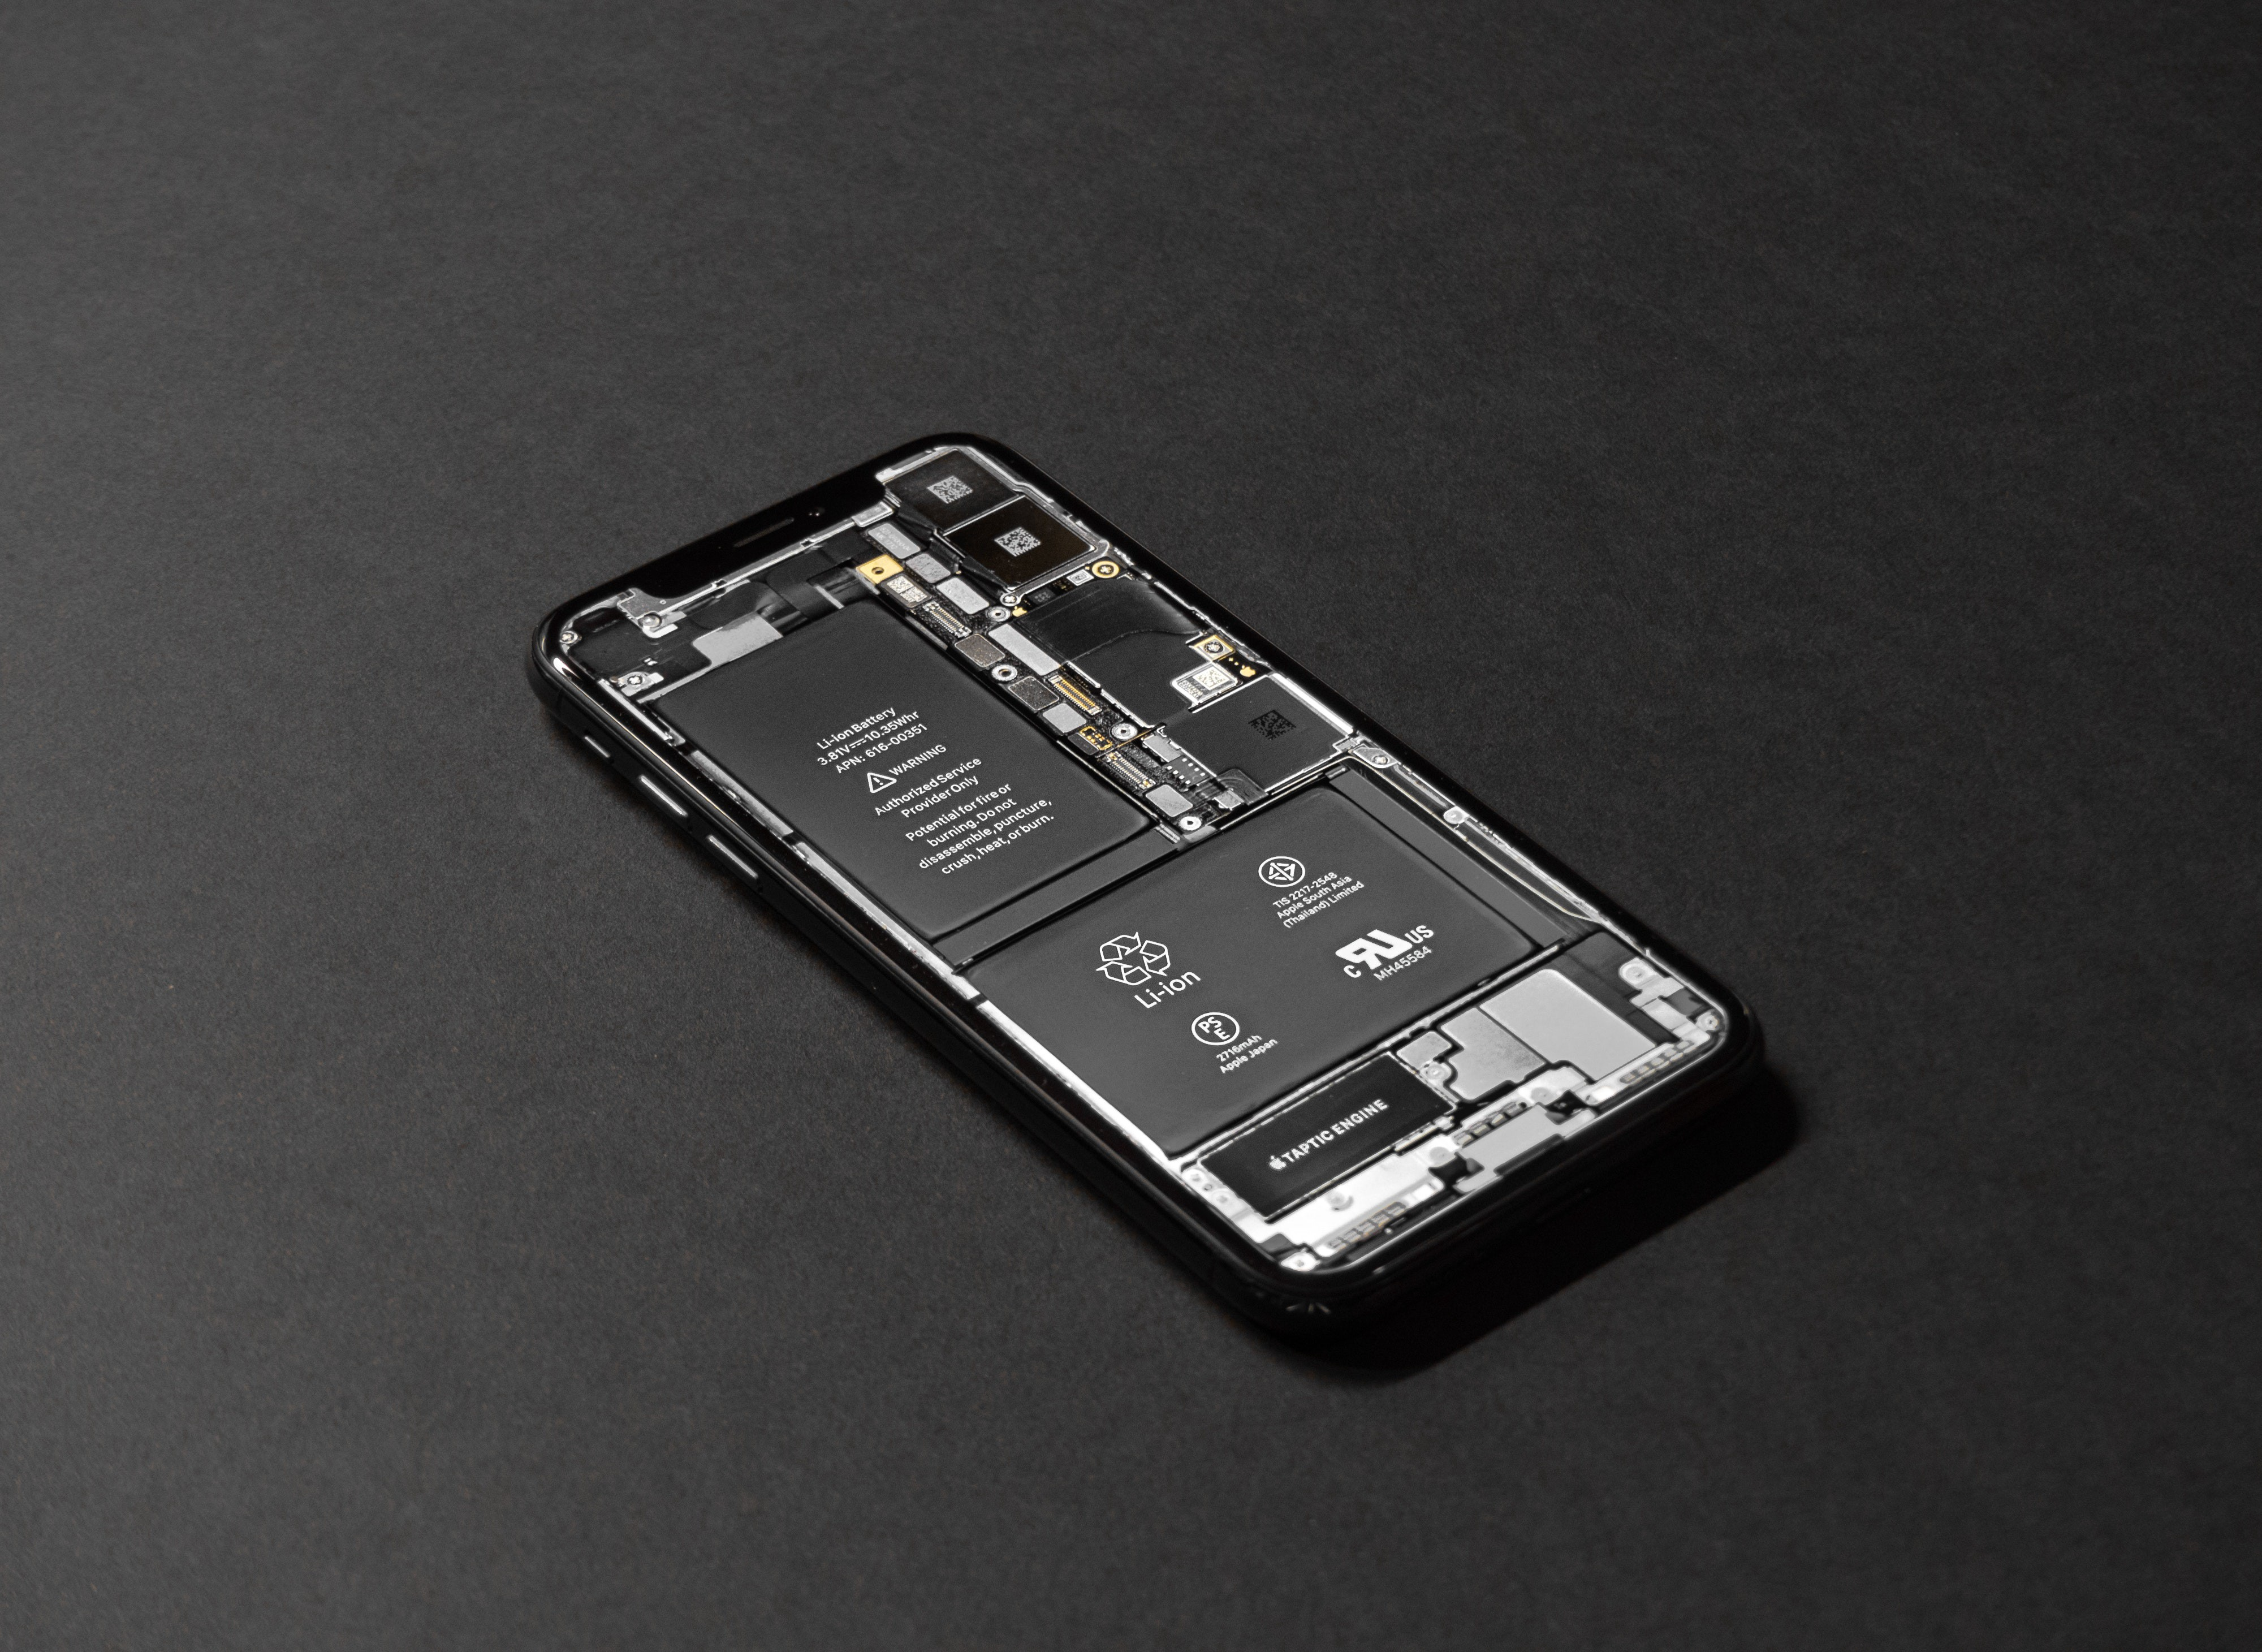 Li-Ion batteries found in most phones today.